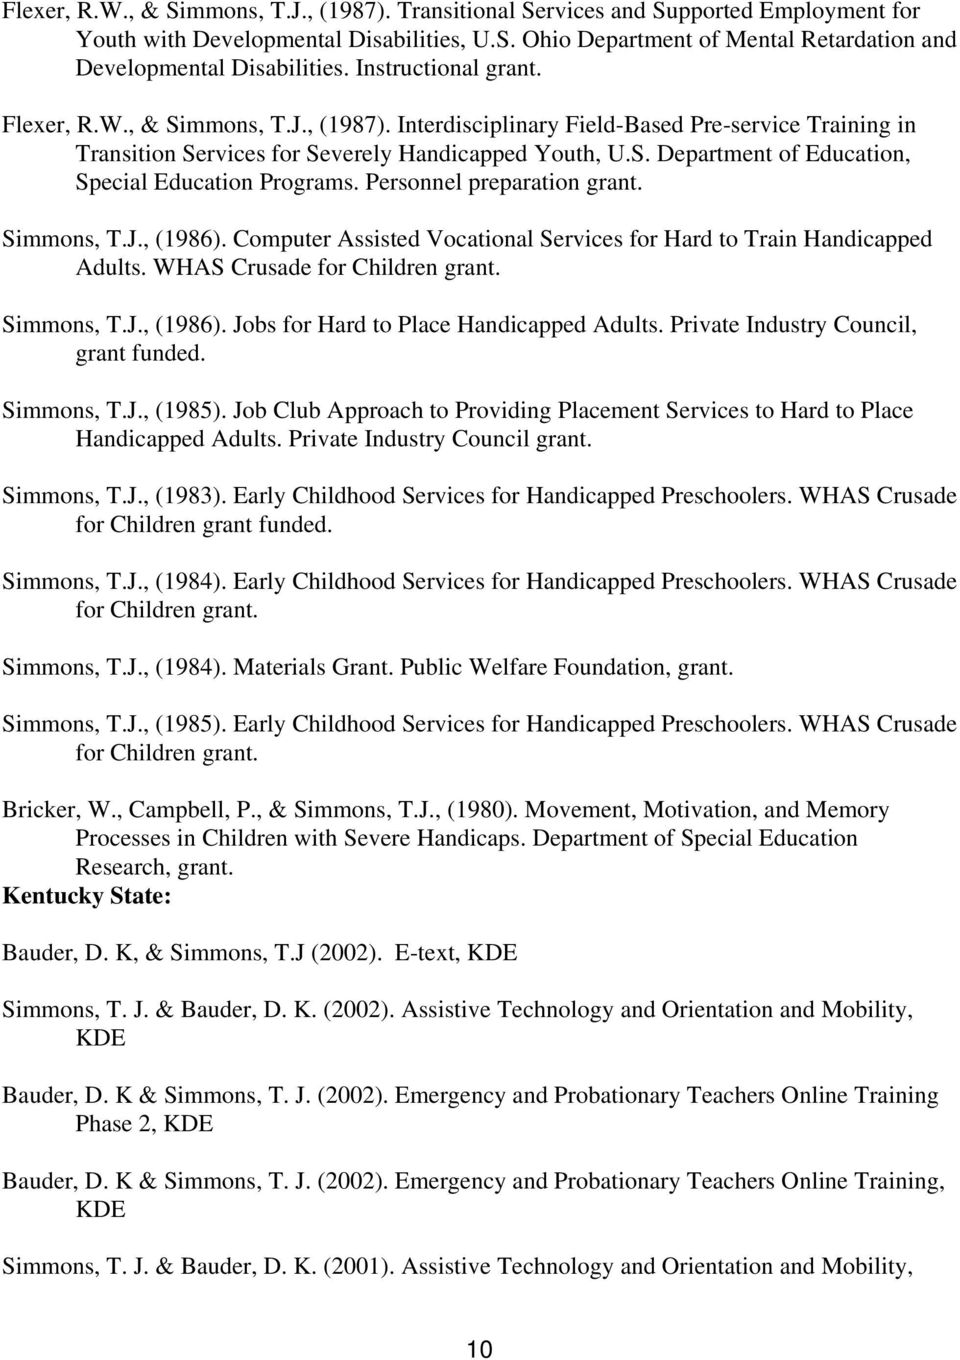 Personnel preparation grant. Simmons, T.J., (1986). Computer Assisted Vocational Services for Hard to Train Handicapped Adults. WHAS Crusade for Children grant. Simmons, T.J., (1986). Jobs for Hard to Place Handicapped Adults.